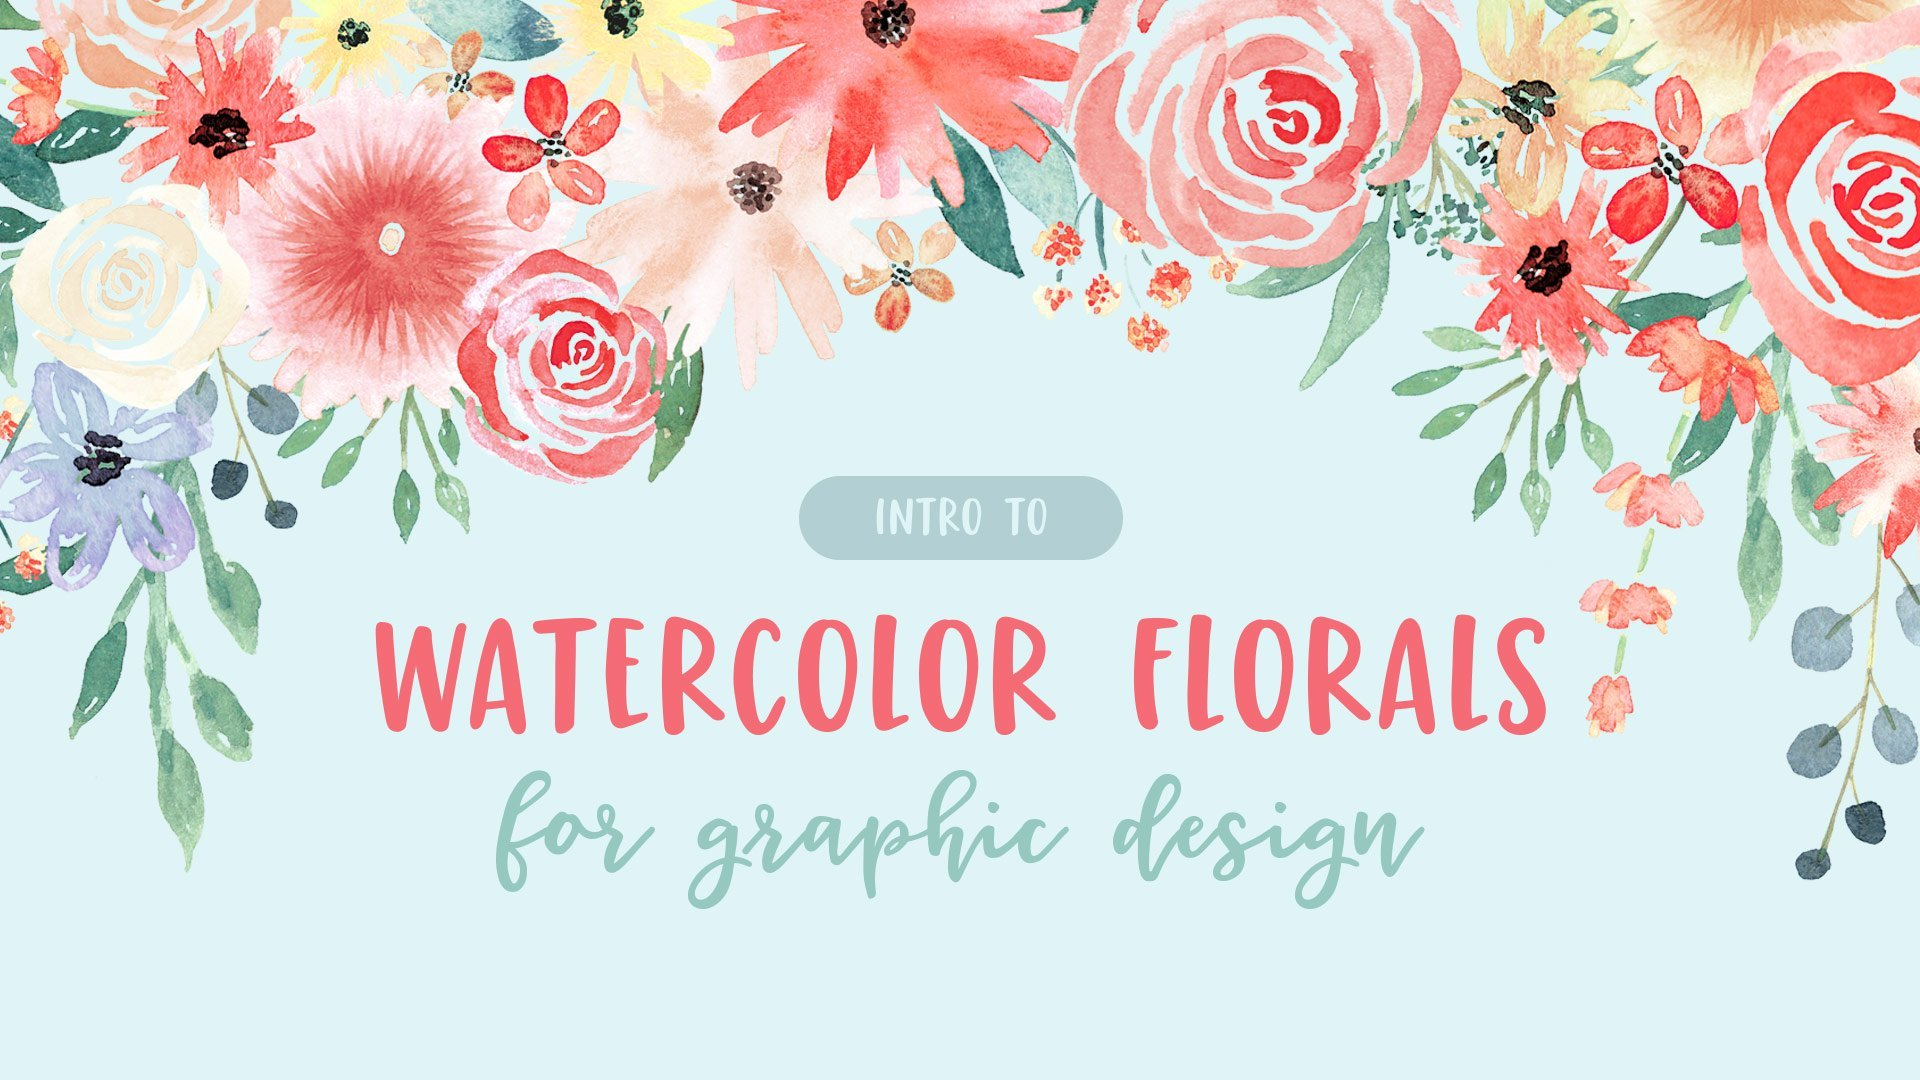 [Intro To] Watercolor Florals for Graphic Design